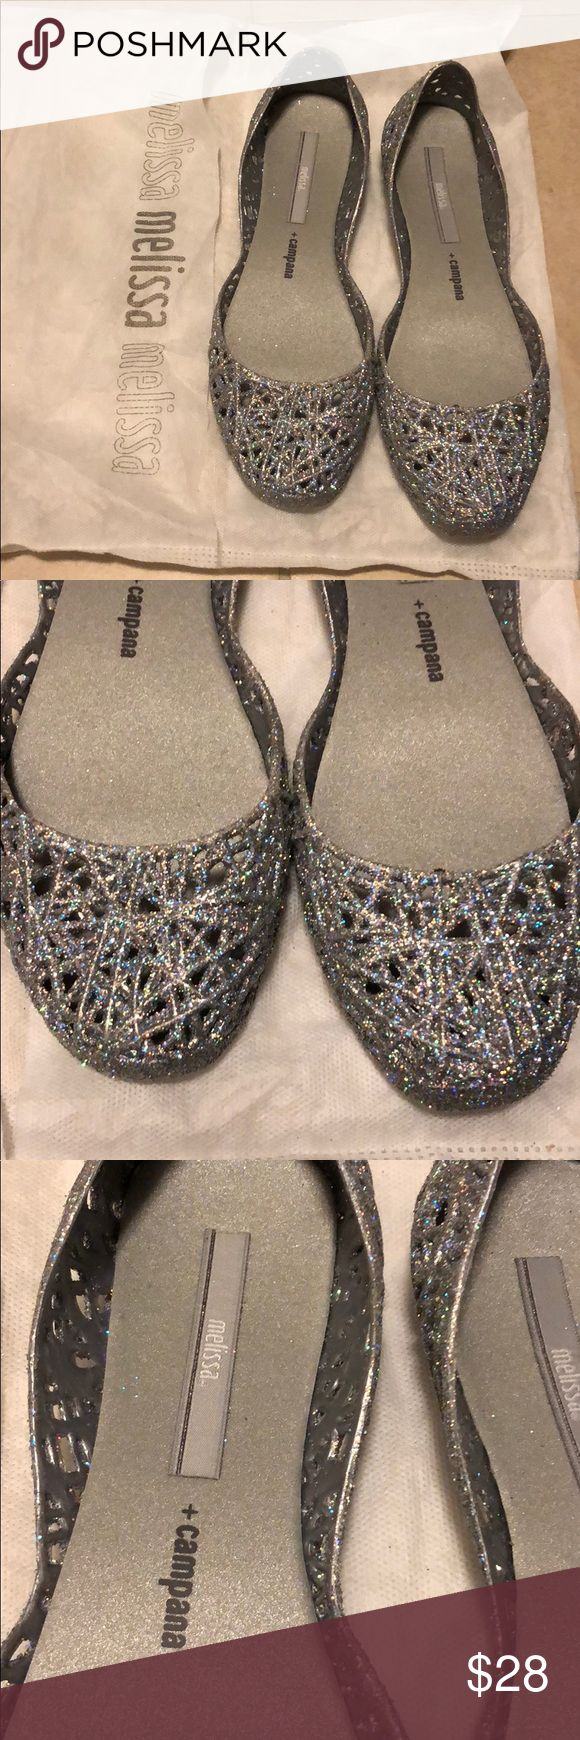 Brand new Melissa campana zig zag silver glitter Brand new without box - comes with dust bag - melissa campana zig zag silver glitter size 7 (36 Brazil). These jelly flats smell like bubble gum. They are super comfy and will add the sparkle to your outfit! Melissa Shoes Flats & Loafers